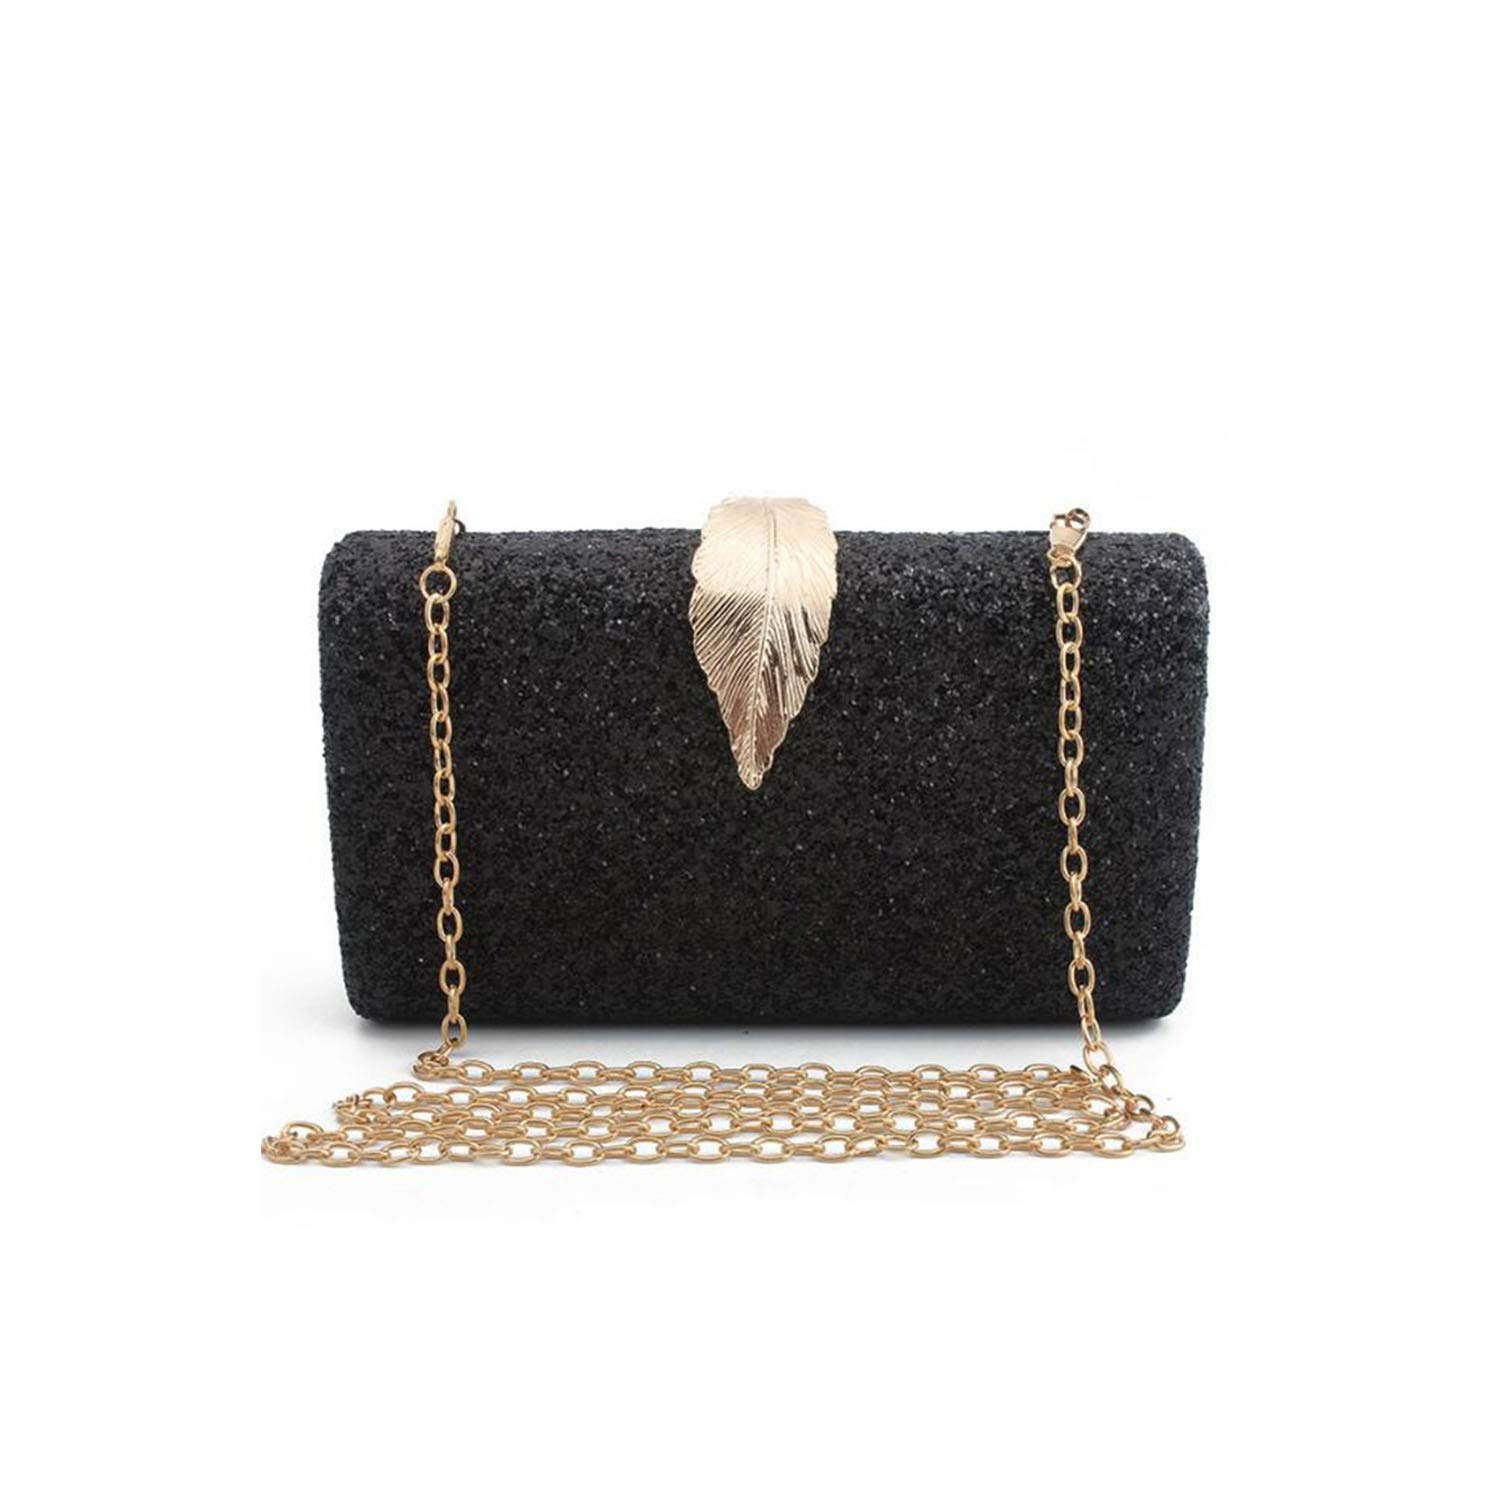 03afdc5cff39 Sequined Clutch Women's Evening Bags Day Clutches Gold Metal Leaf ...